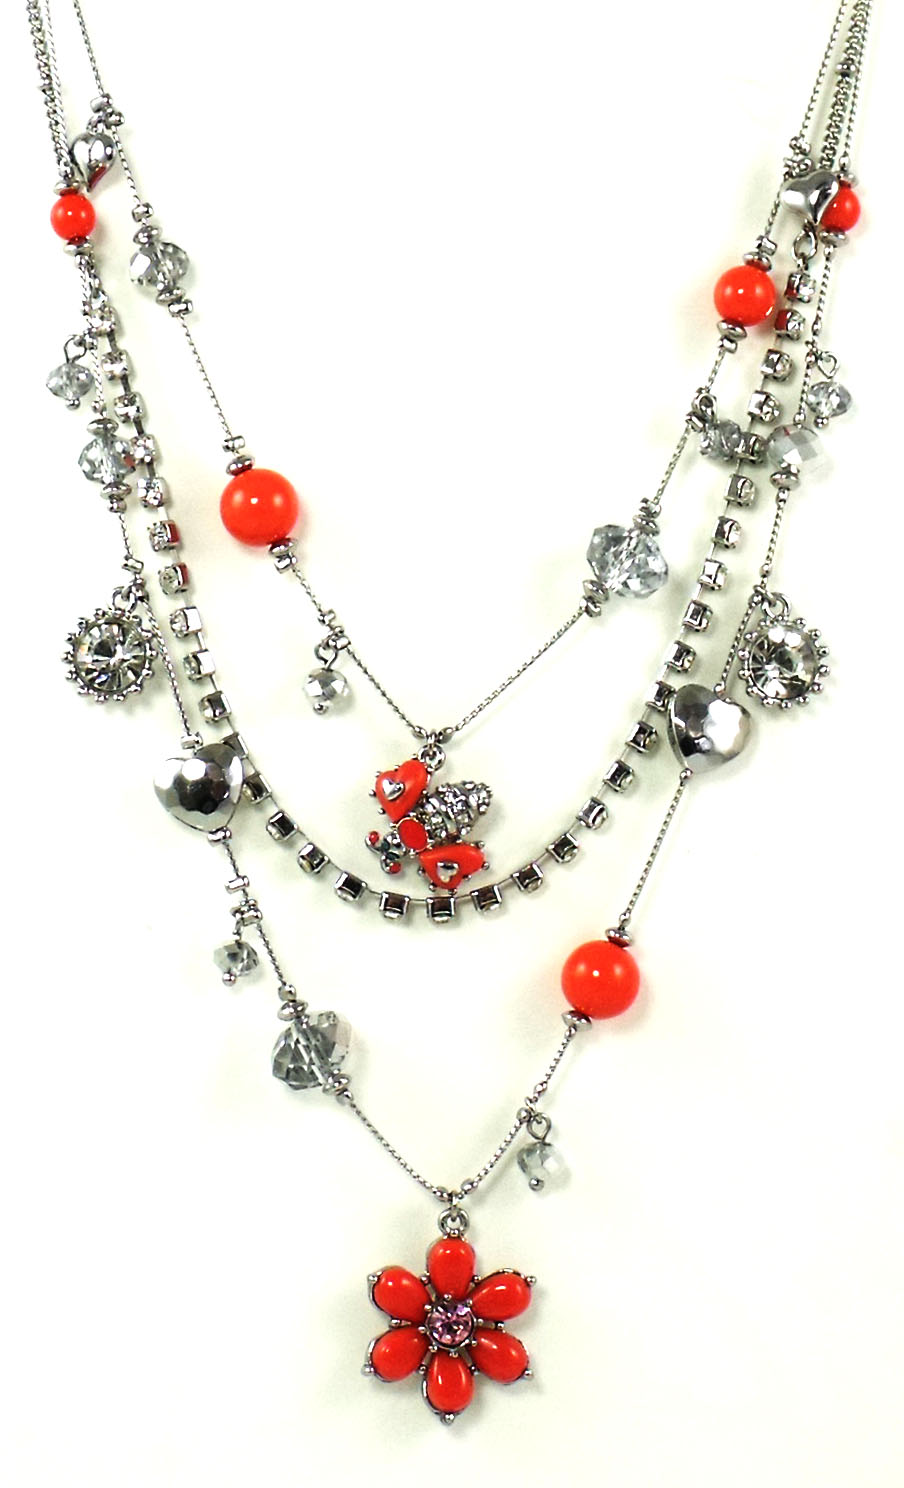 Betsey Johnson Jewelry Iconic Coral Flower Layer Necklace New